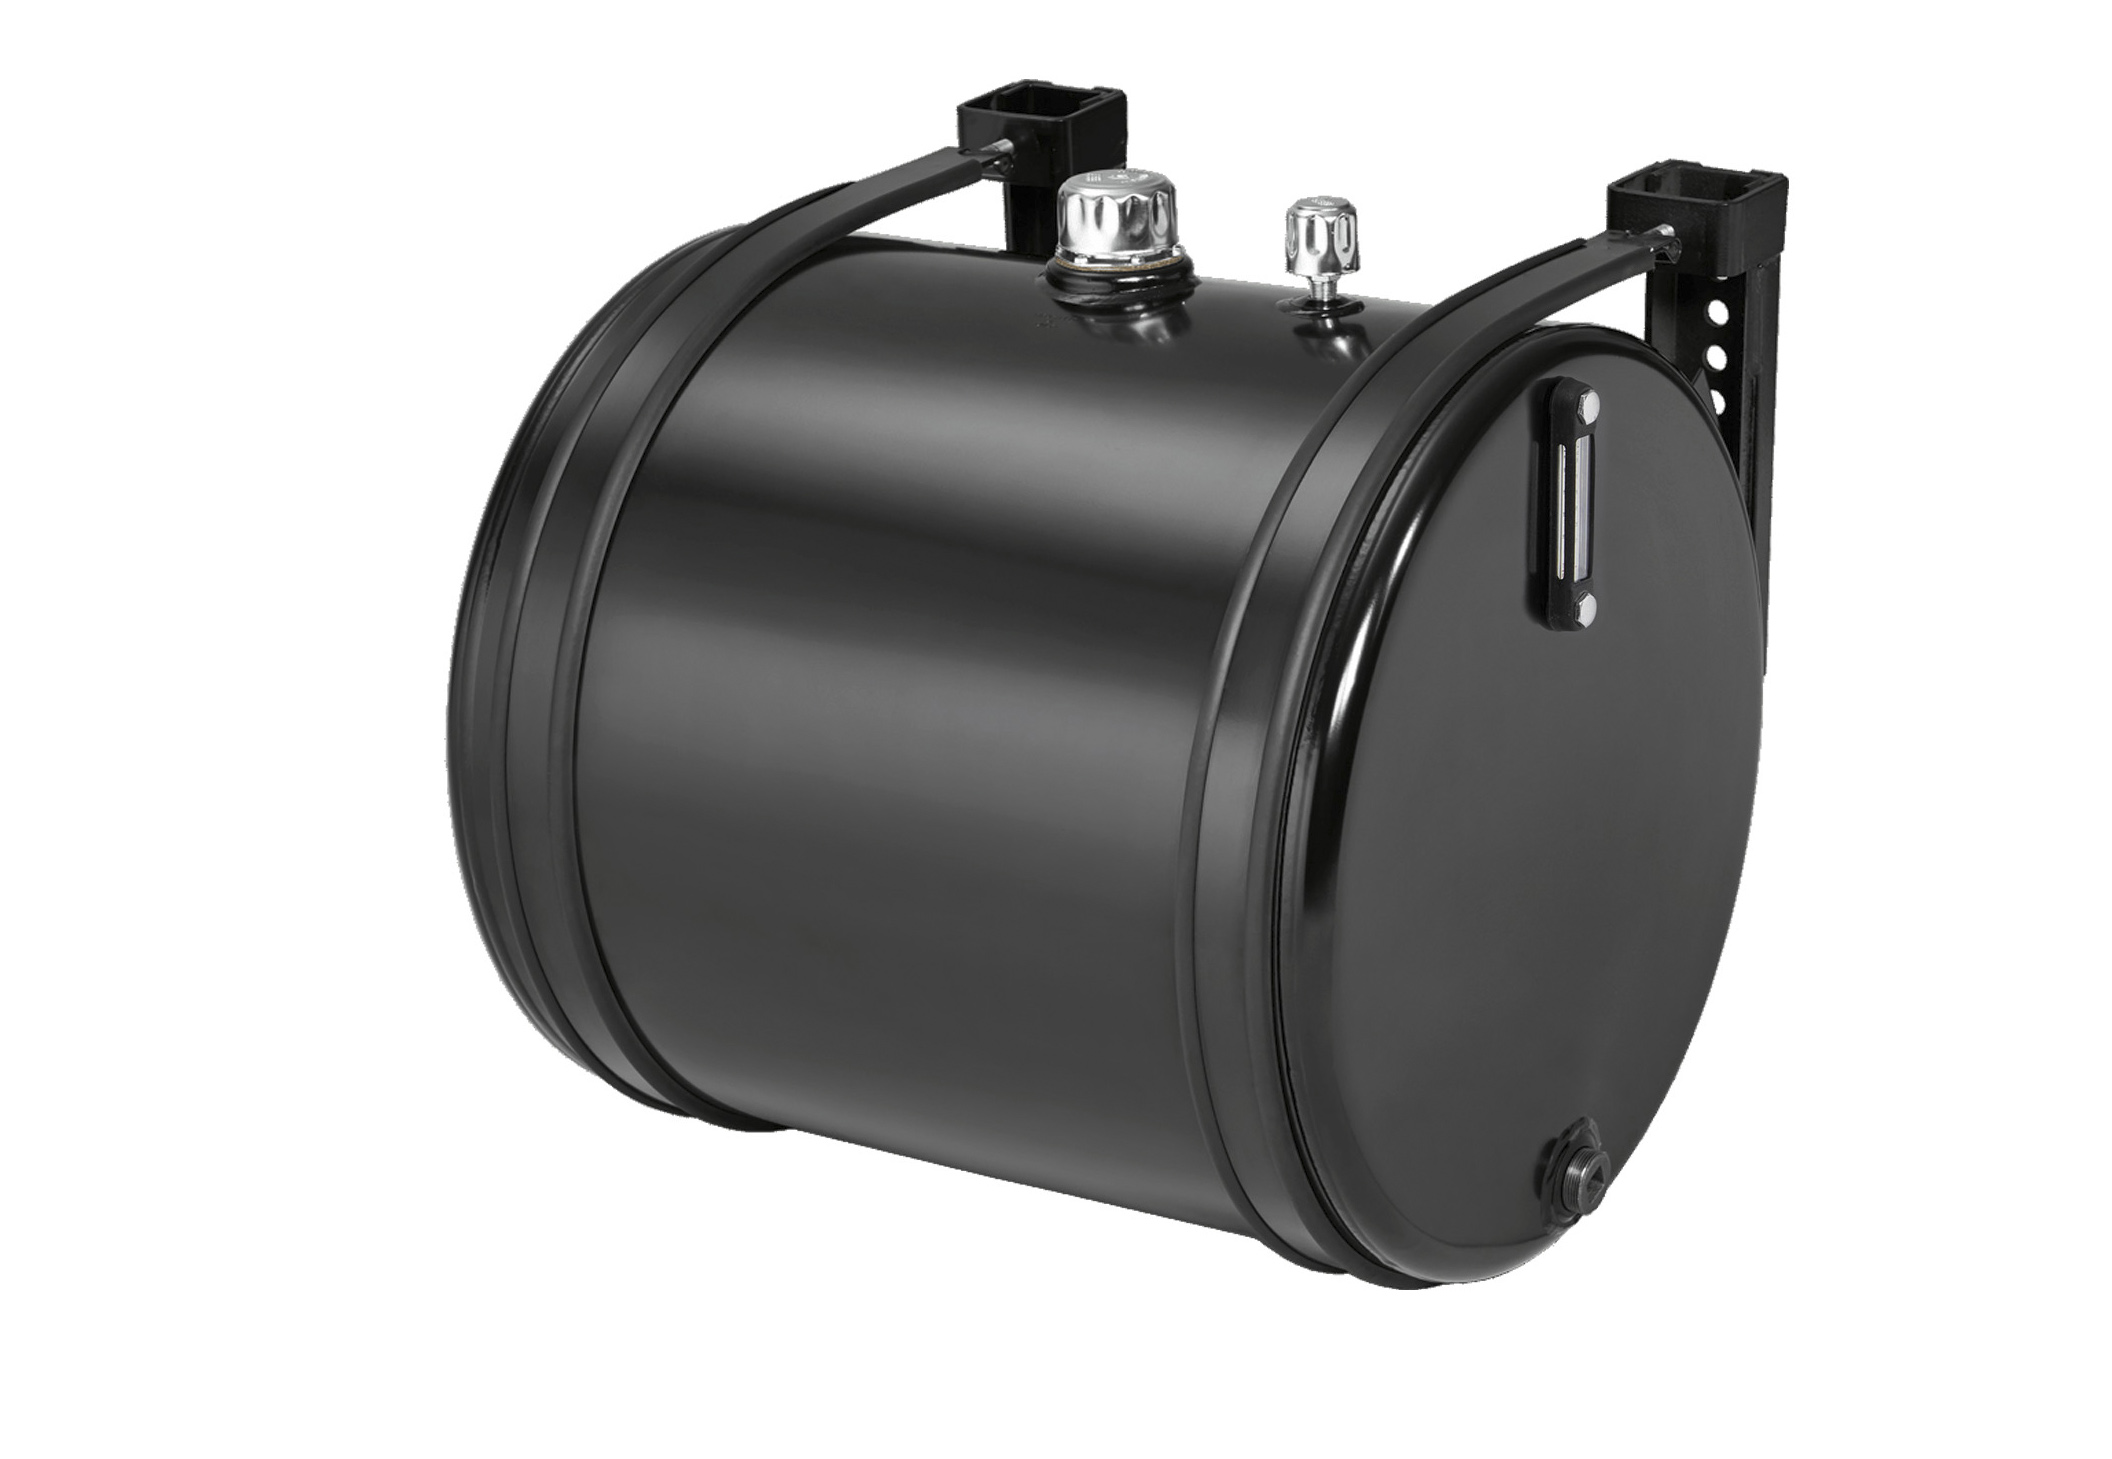 Saddlemount-Tanks - Steel-Saddlemount-50-Gallon